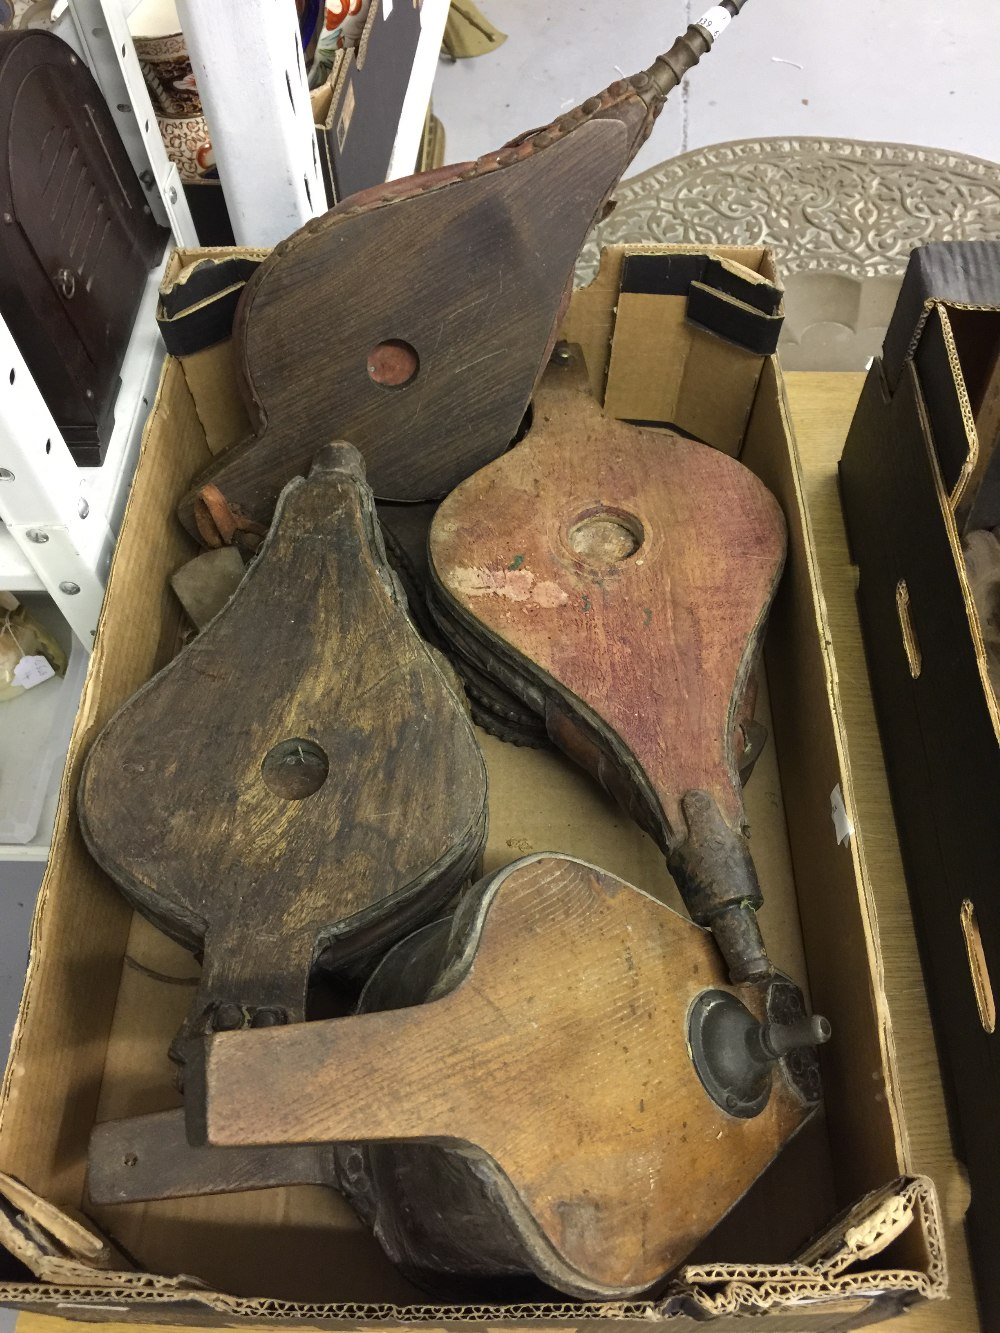 Lot 19 - 19th cent. Treen & leather set of bellows, 5 forward blow & 1 sideway blow. (6 Total).